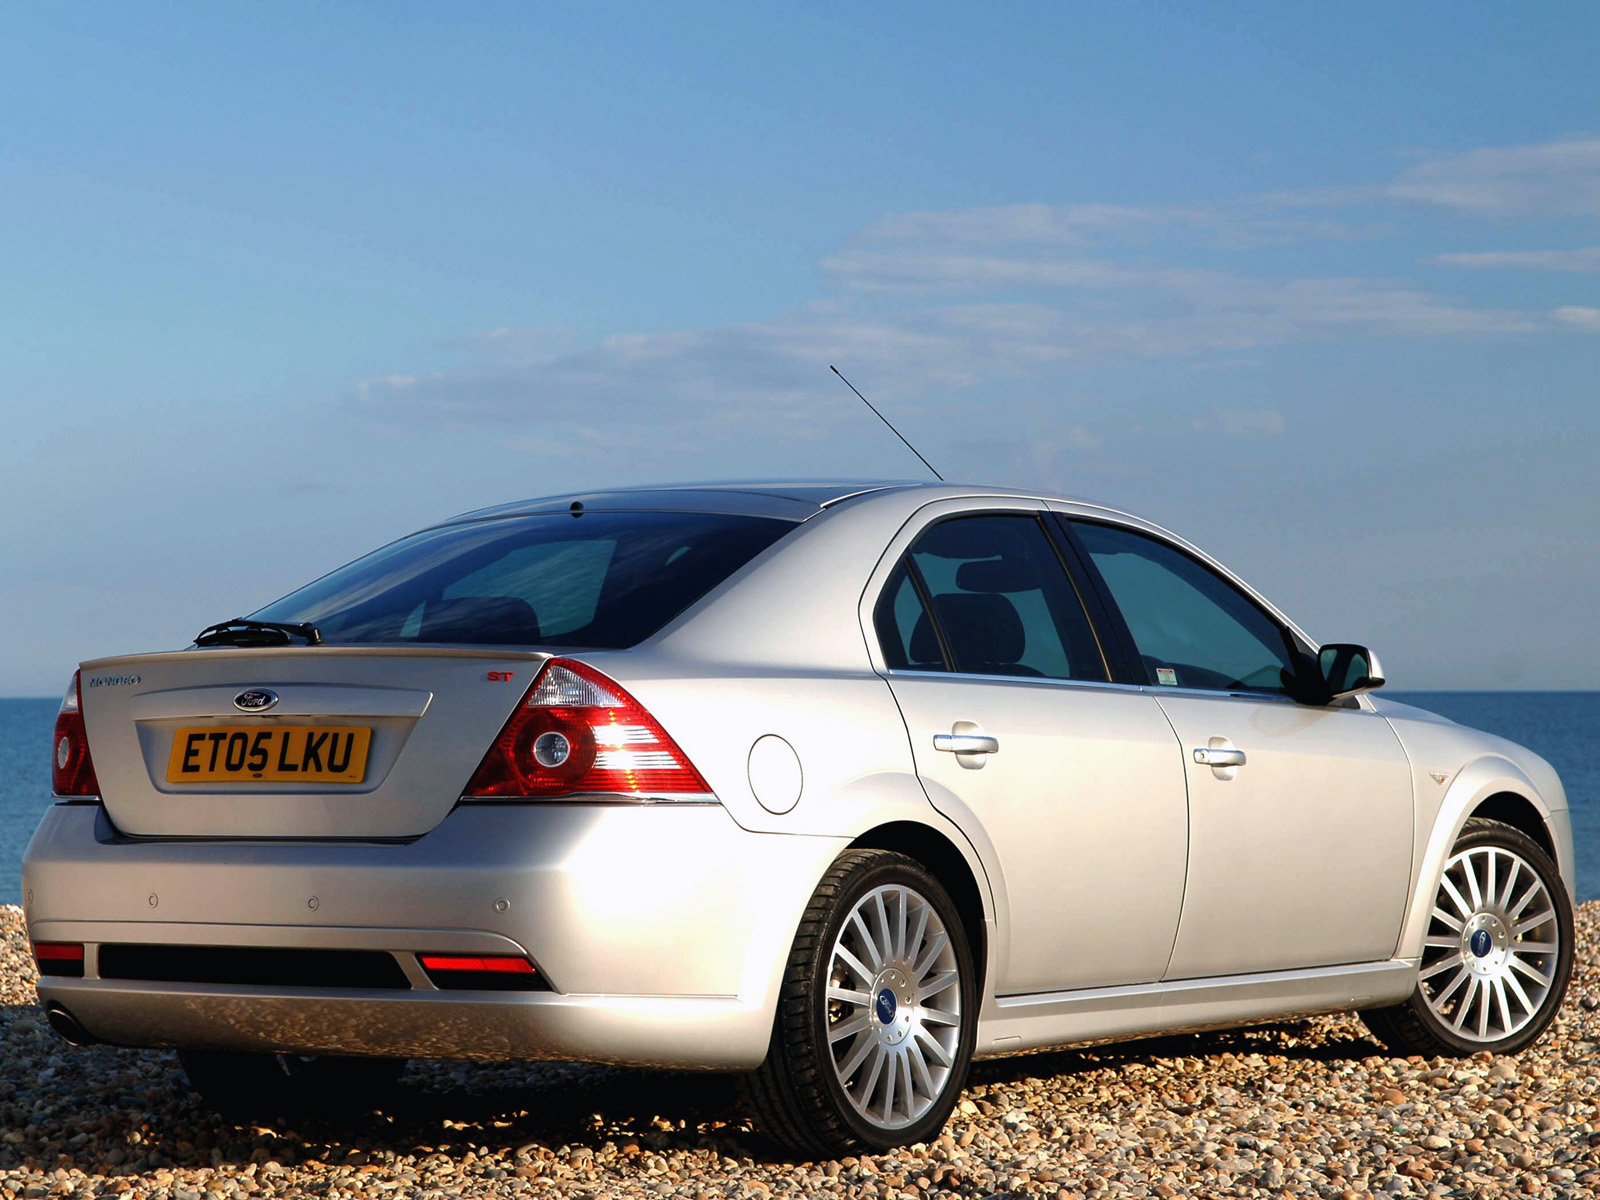 Ford Mondeo RS. photo ford-mondeo-rs-06.jpg. MotoBurg.